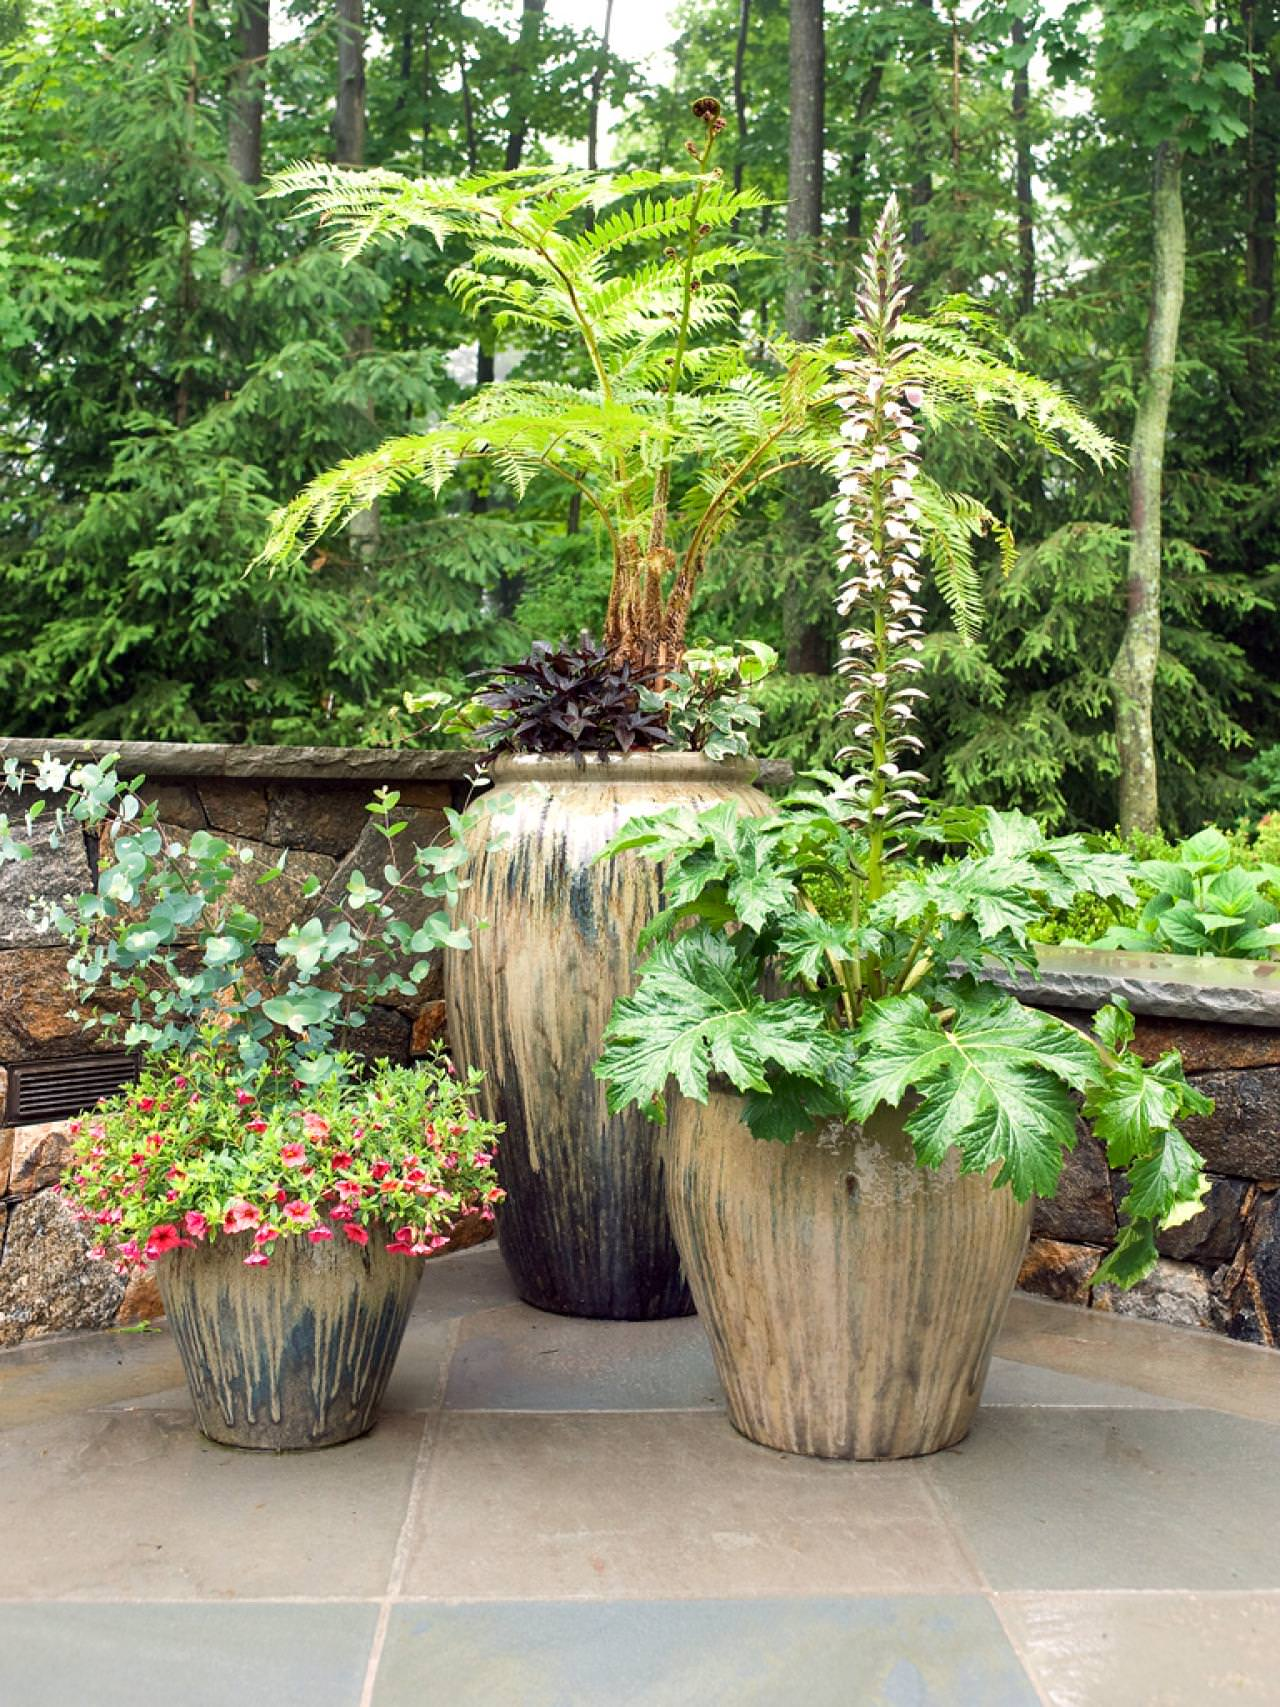 Outdoor Flower Planter Ideas Plant Several In A Large Container